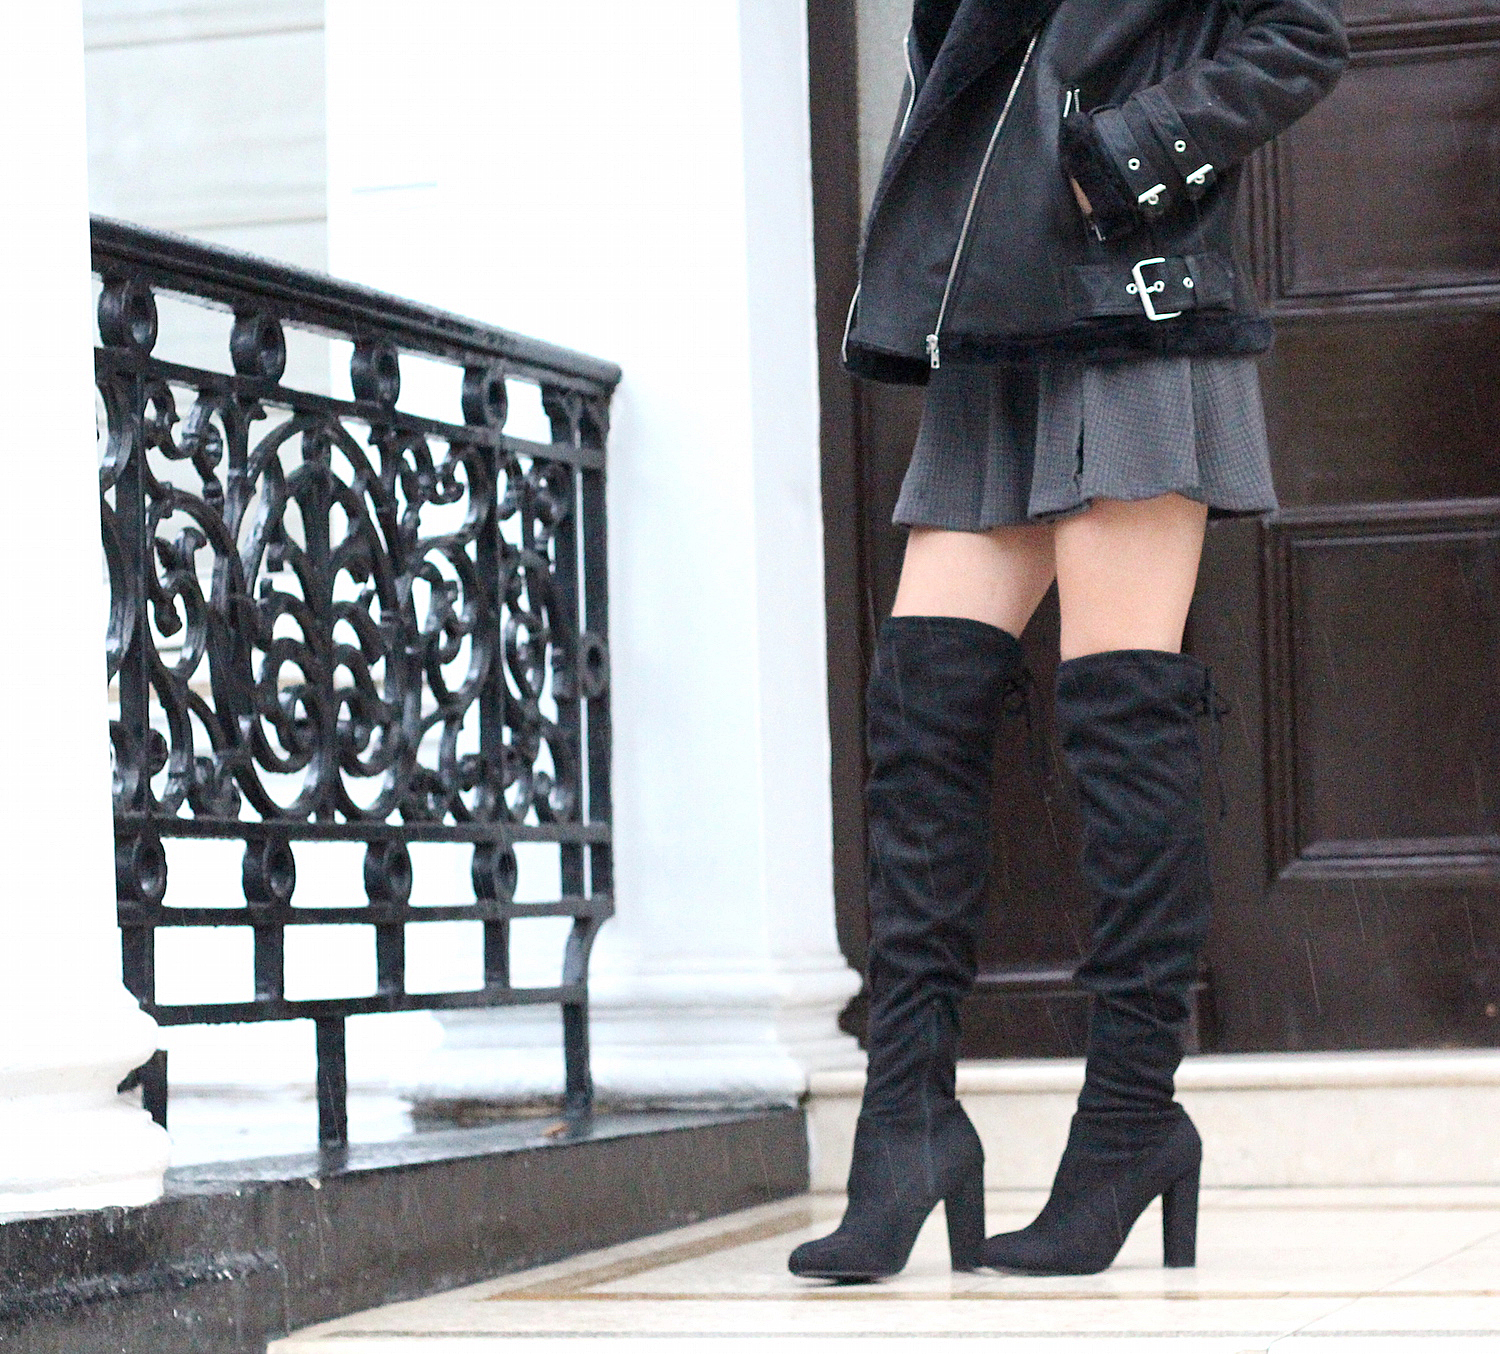 peexo fashion blogger wearing over the knee chockers boots